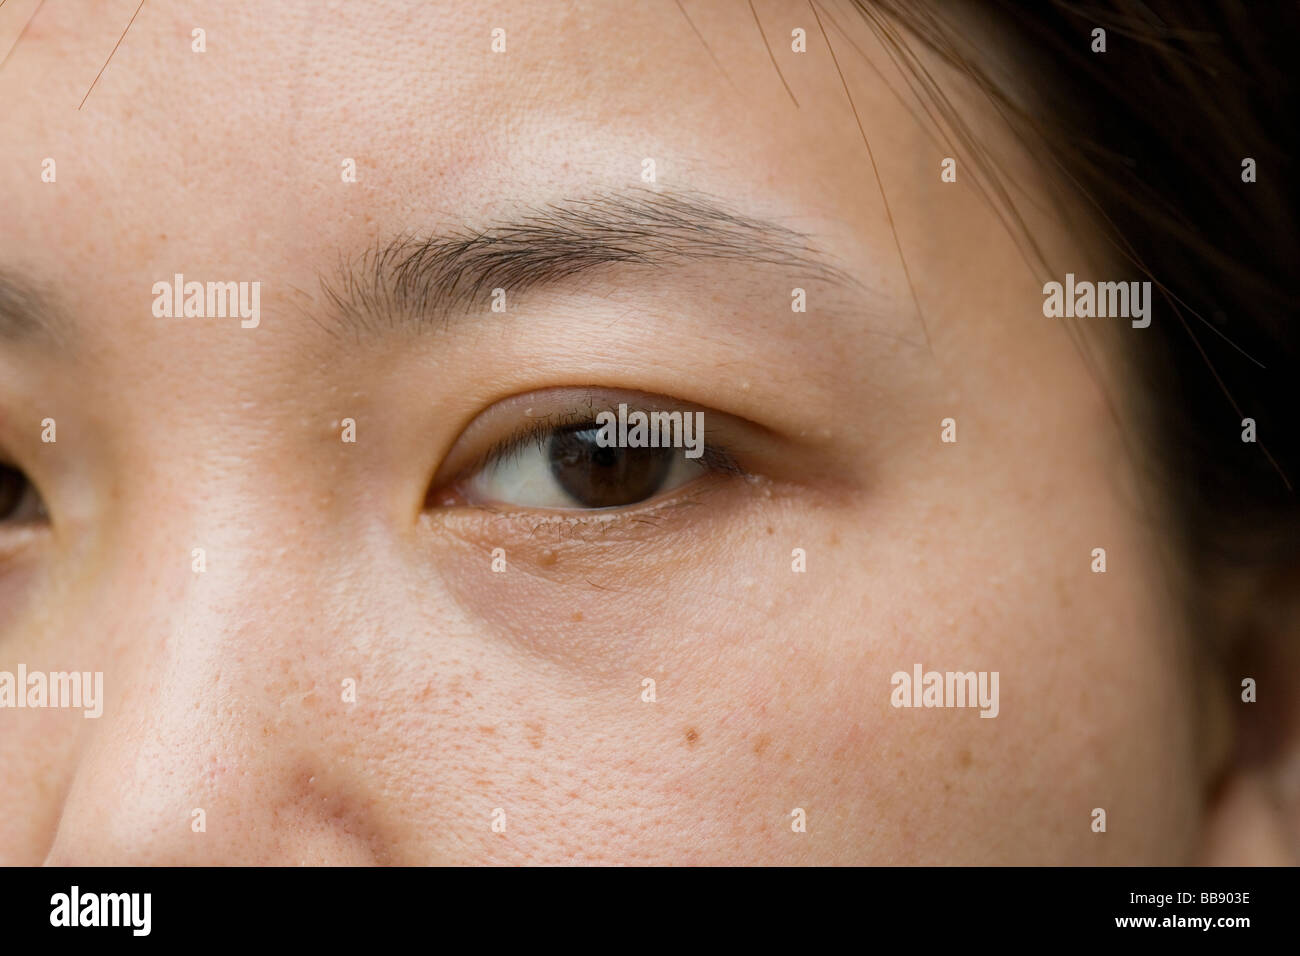 Zhao Yan, 27, one week after an operation to give her double eyelids - Stock Image